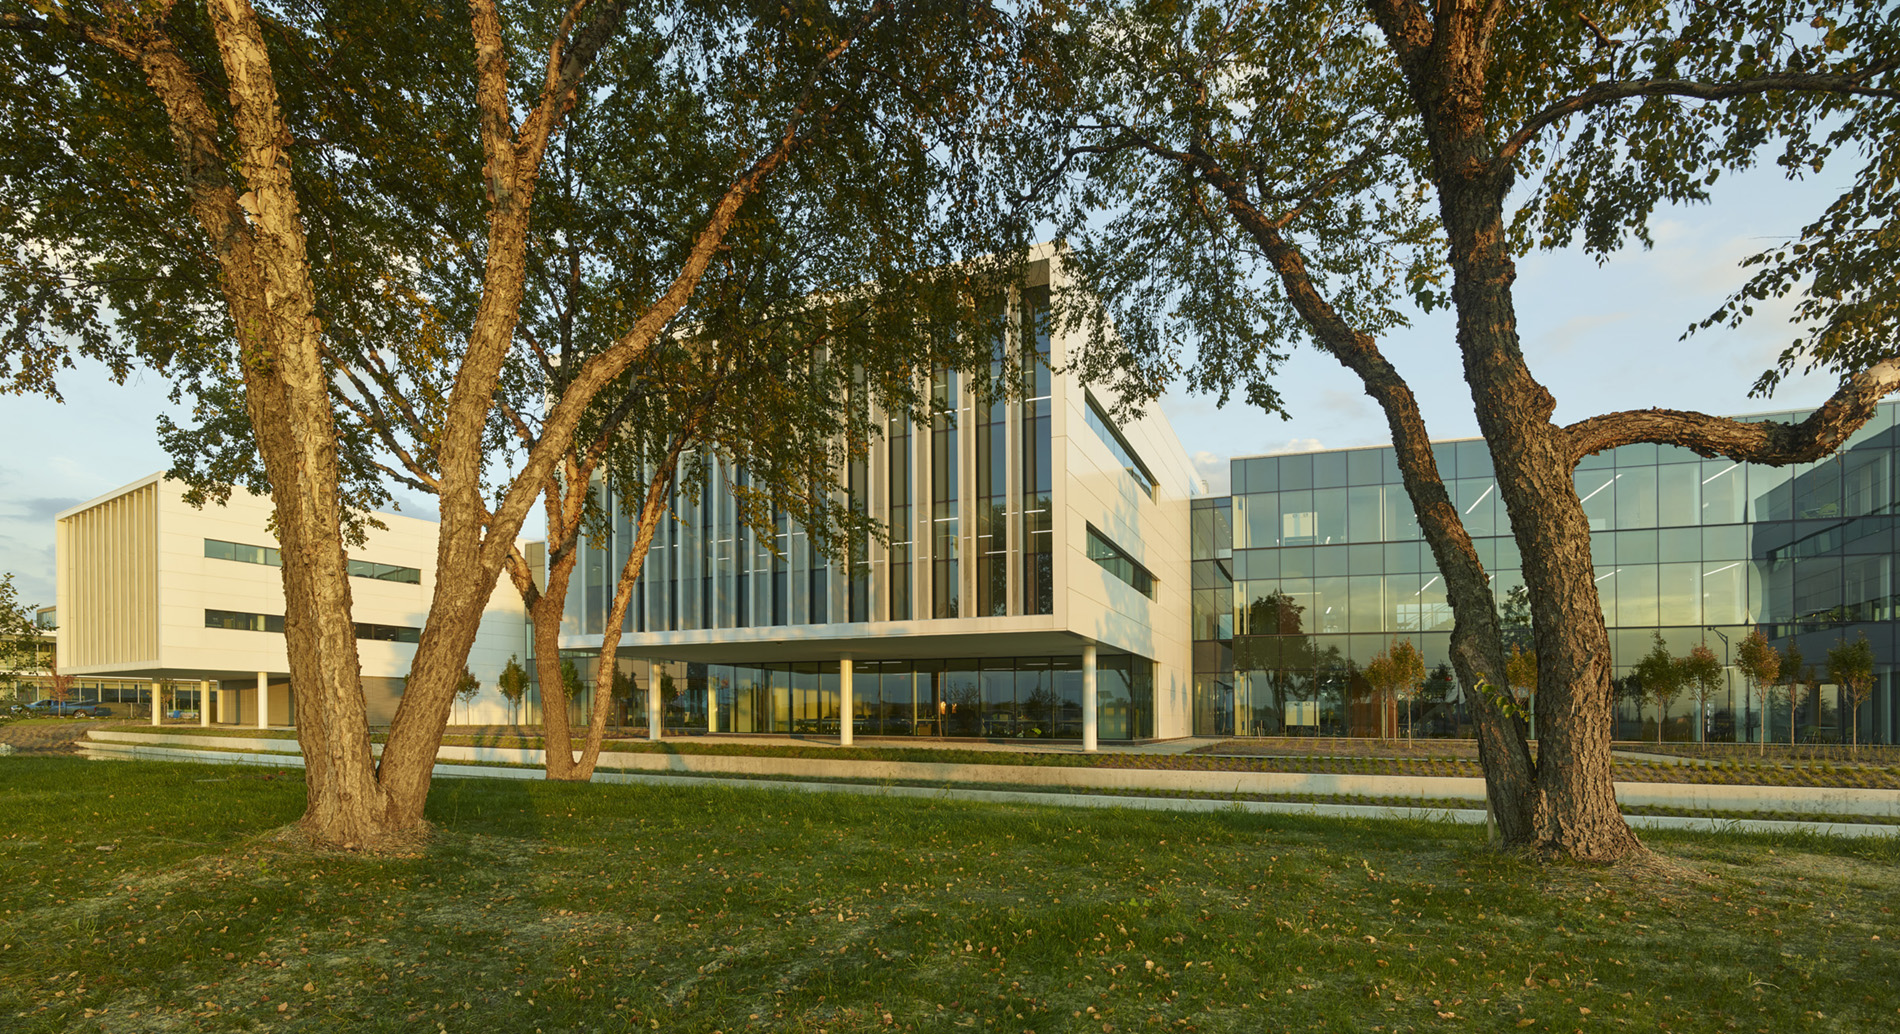 Roche Diagnostics, North American Headquarters, Campus Transformation